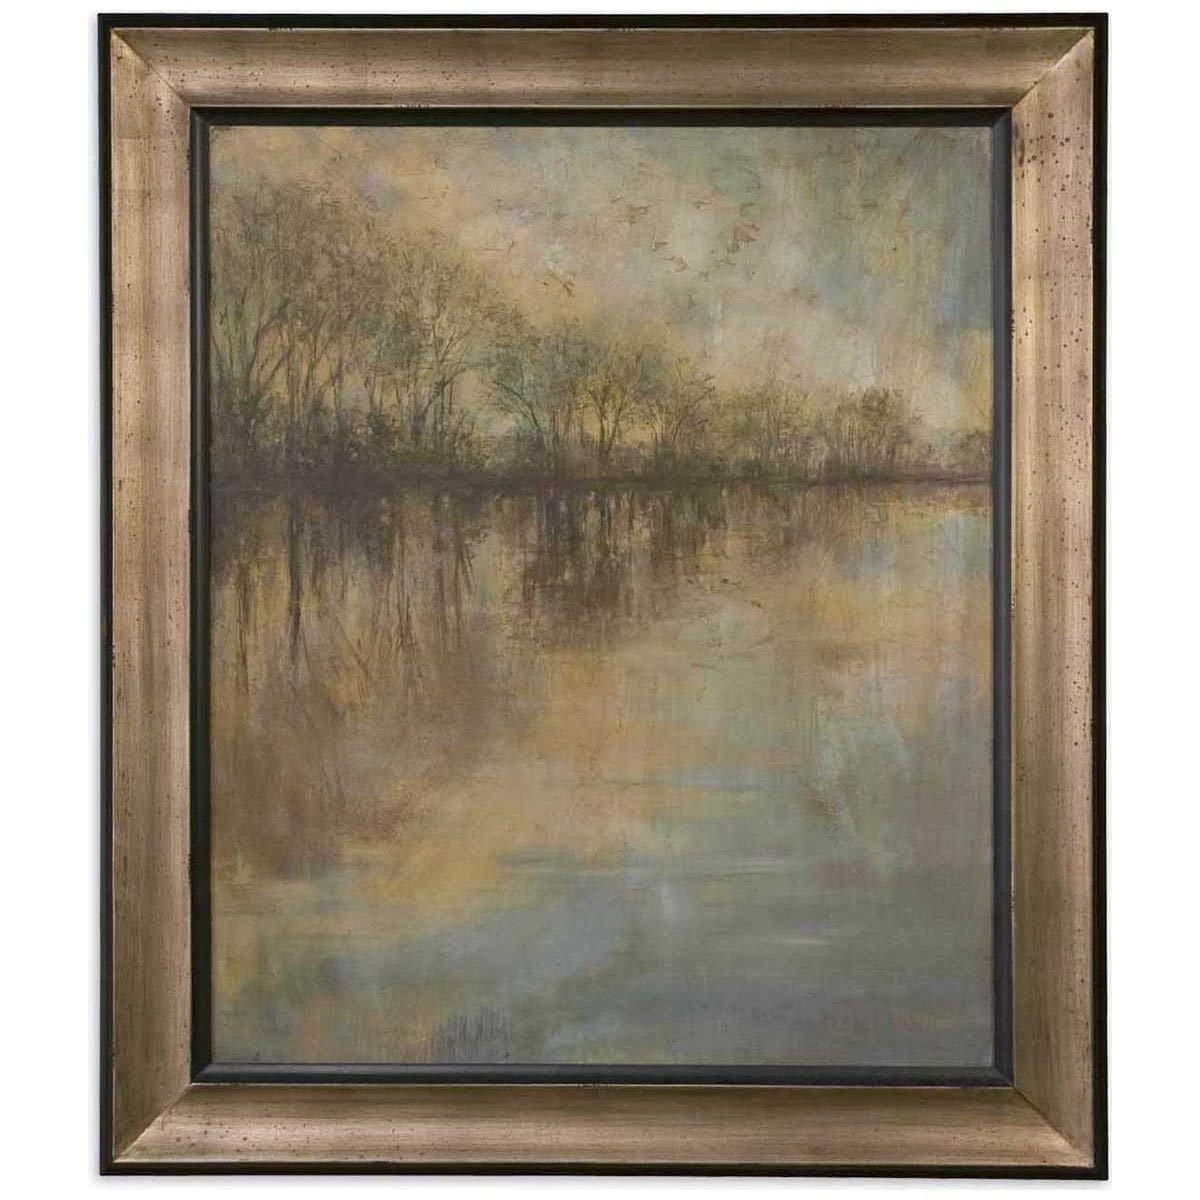 2017 Uttermost Wall Art With Regard To Amazon: Uttermost 41180 Winter Glow Framed Art: Prints: Posters (View 2 of 15)